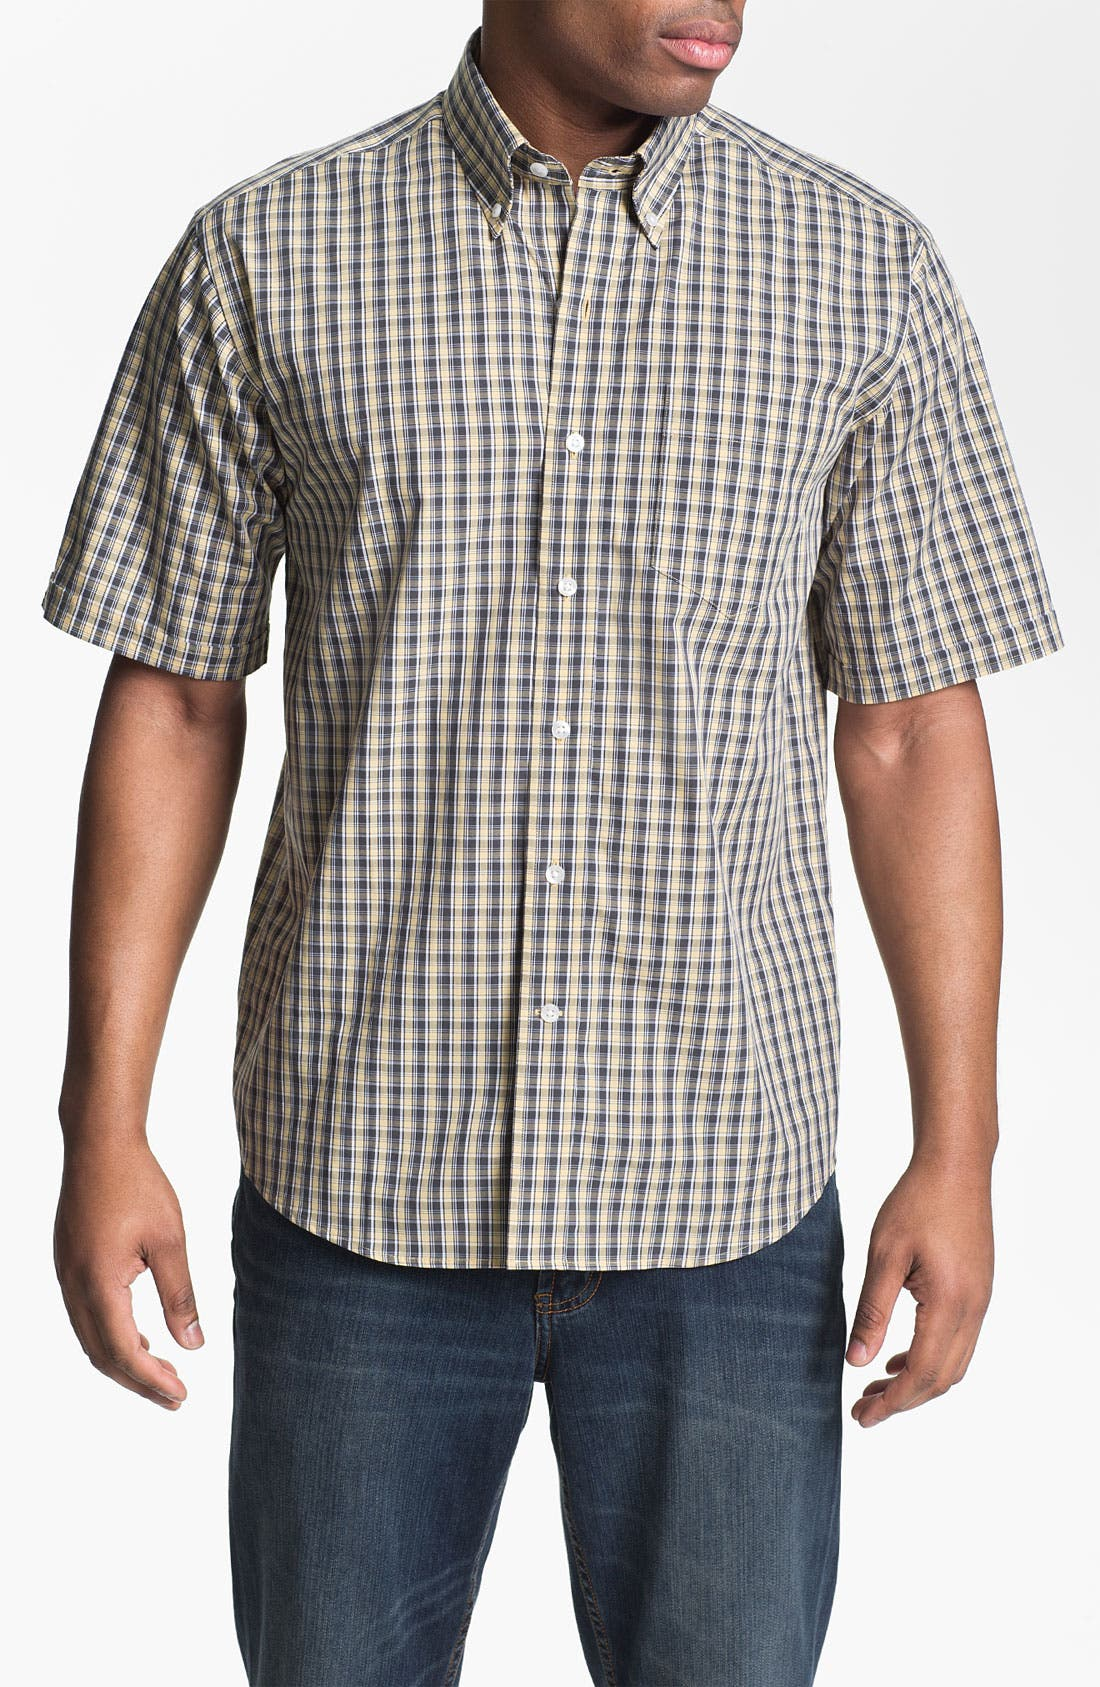 Alternate Image 1 Selected - Cutter & Buck 'Midvale' Check Sport Shirt (Big & Tall)